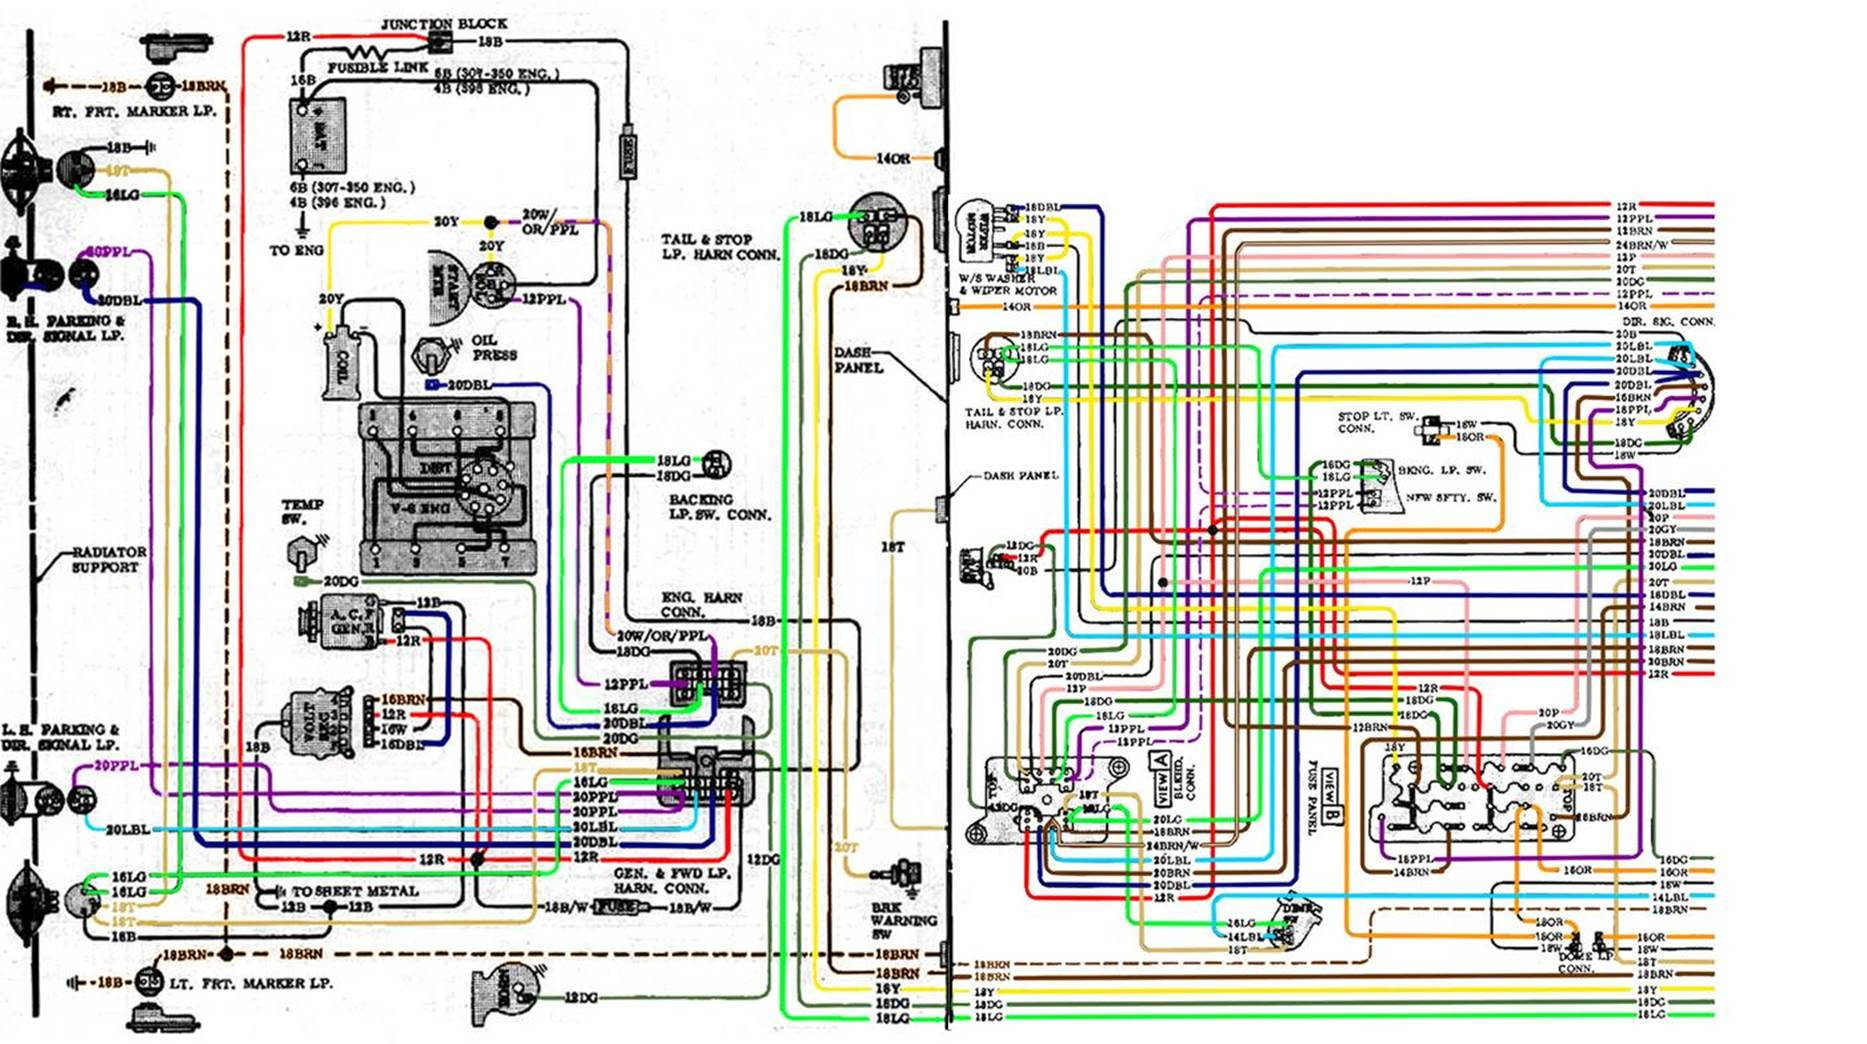 image002 72 c10 wiring diagram chevy truck wiring diagram \u2022 wiring diagrams 1972 c10 wiring harness at panicattacktreatment.co